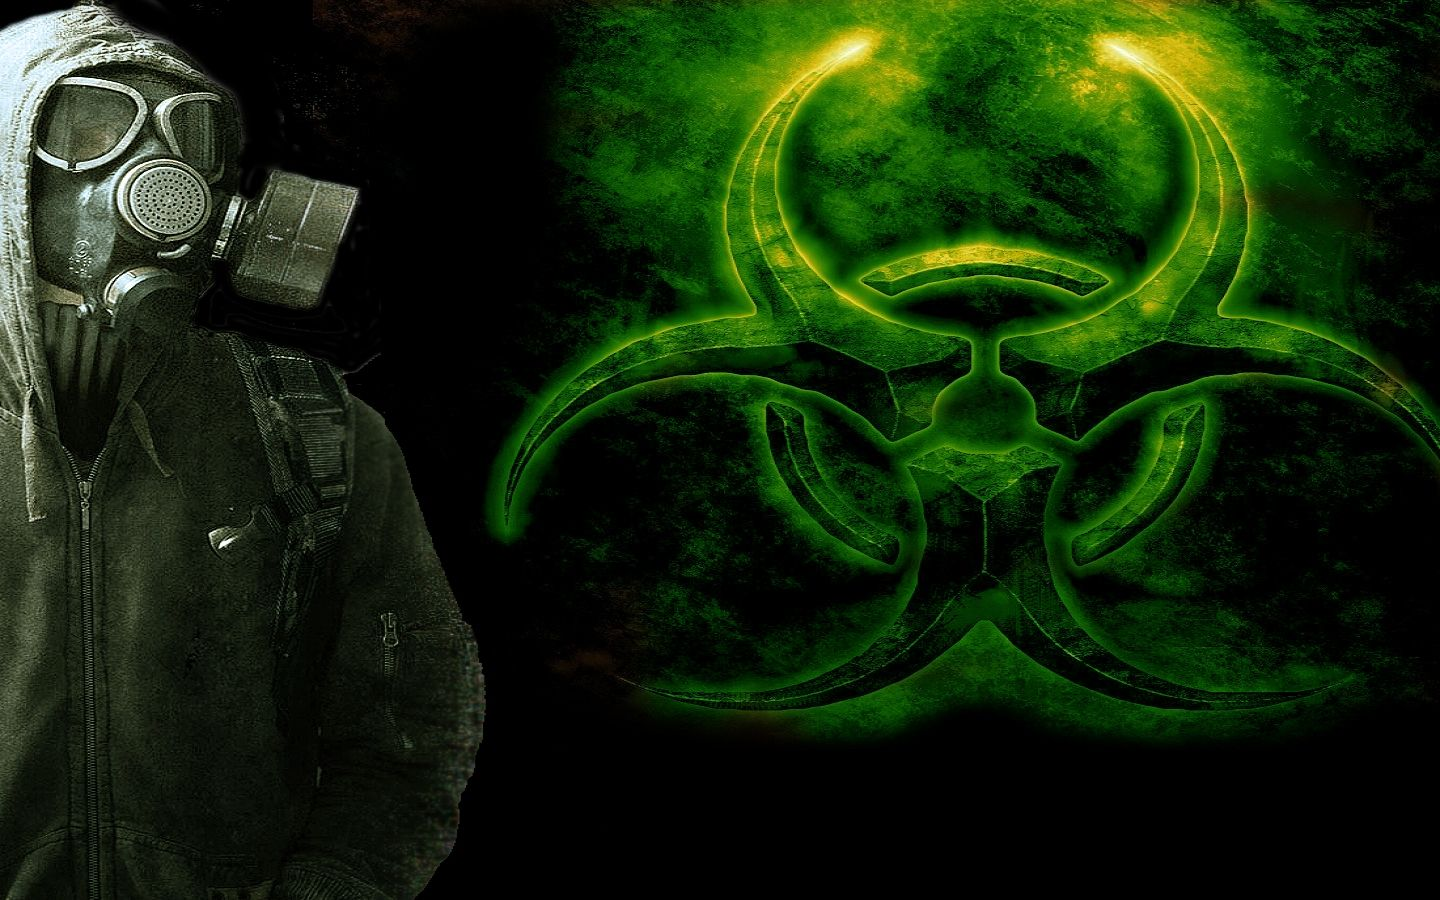 Download 1440x900 Sci Fi Gas Mask Wallpaper/Background ID